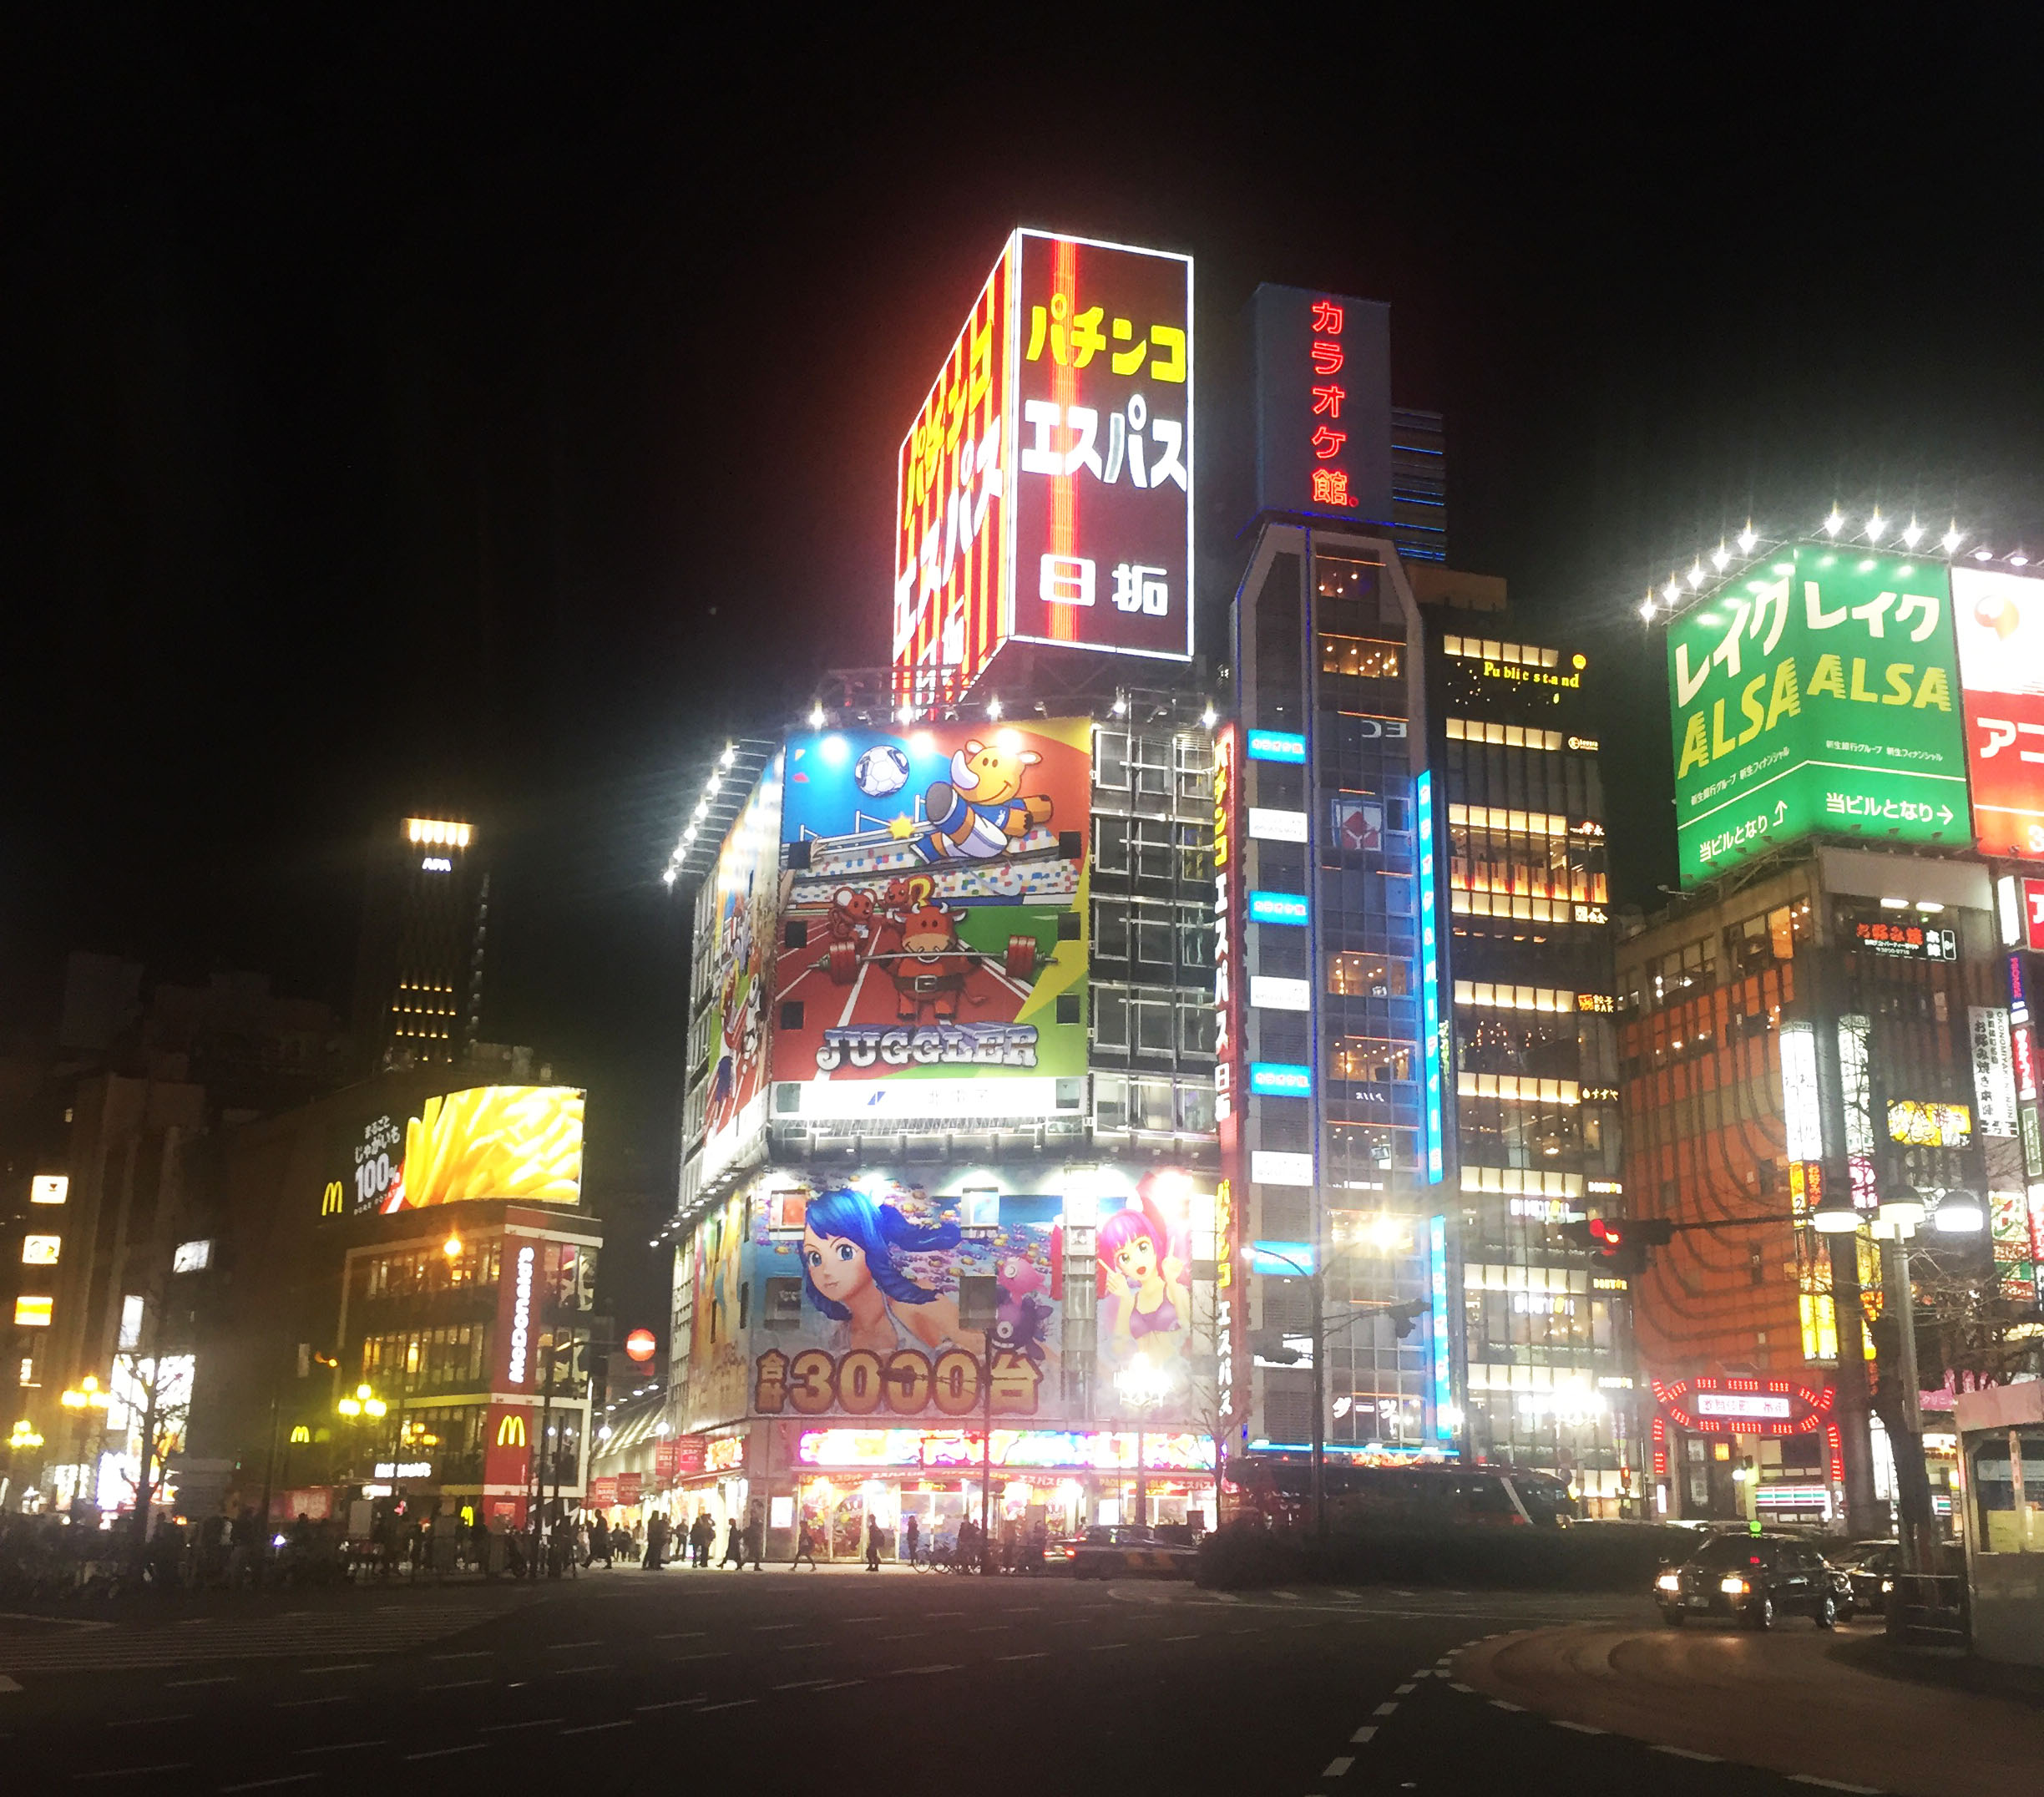 shinjuku at night.JPG